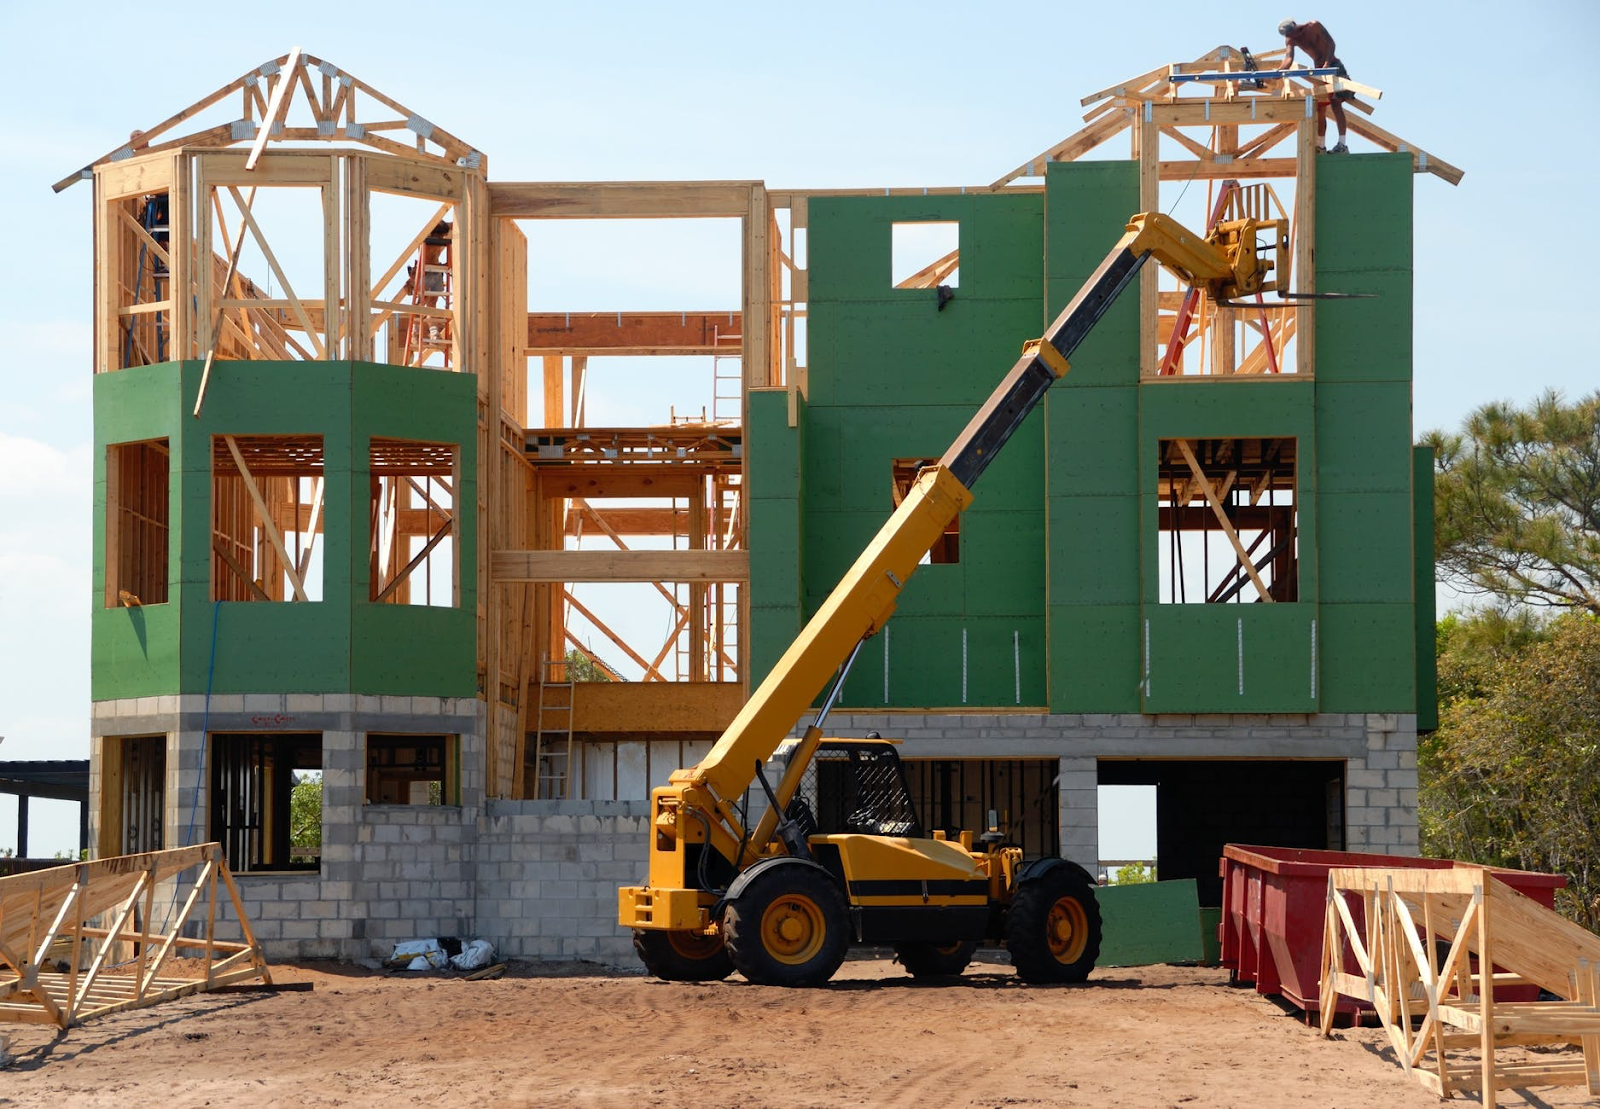 How To Gain Local Support For Your New Development Project